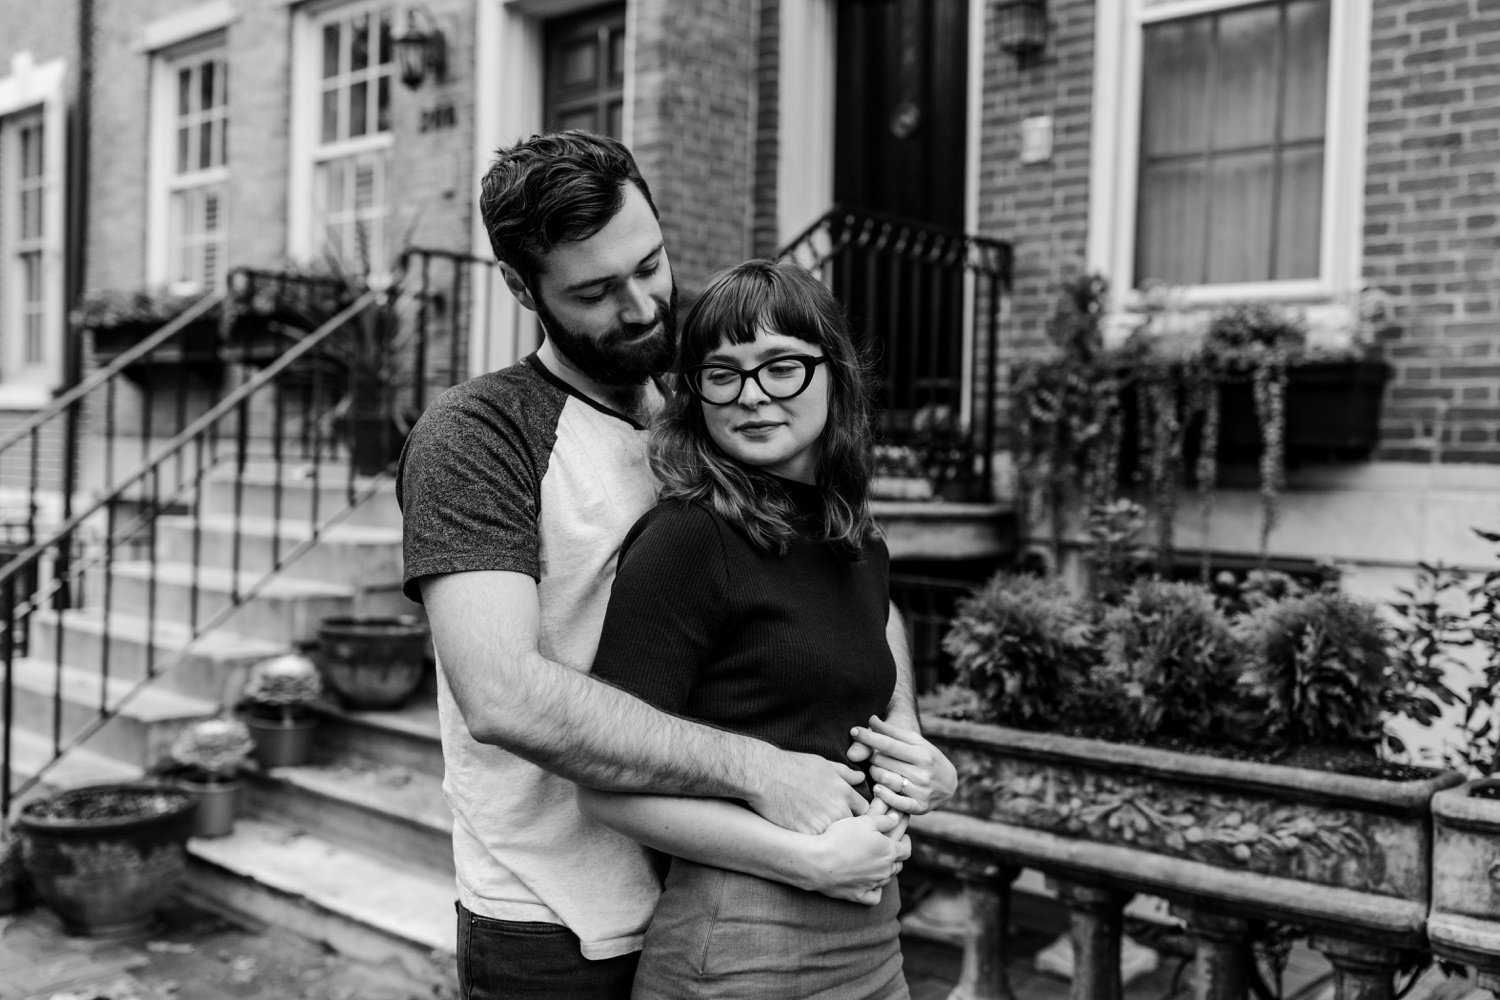 Engagement photo session in historic Society Hill Philadelphia